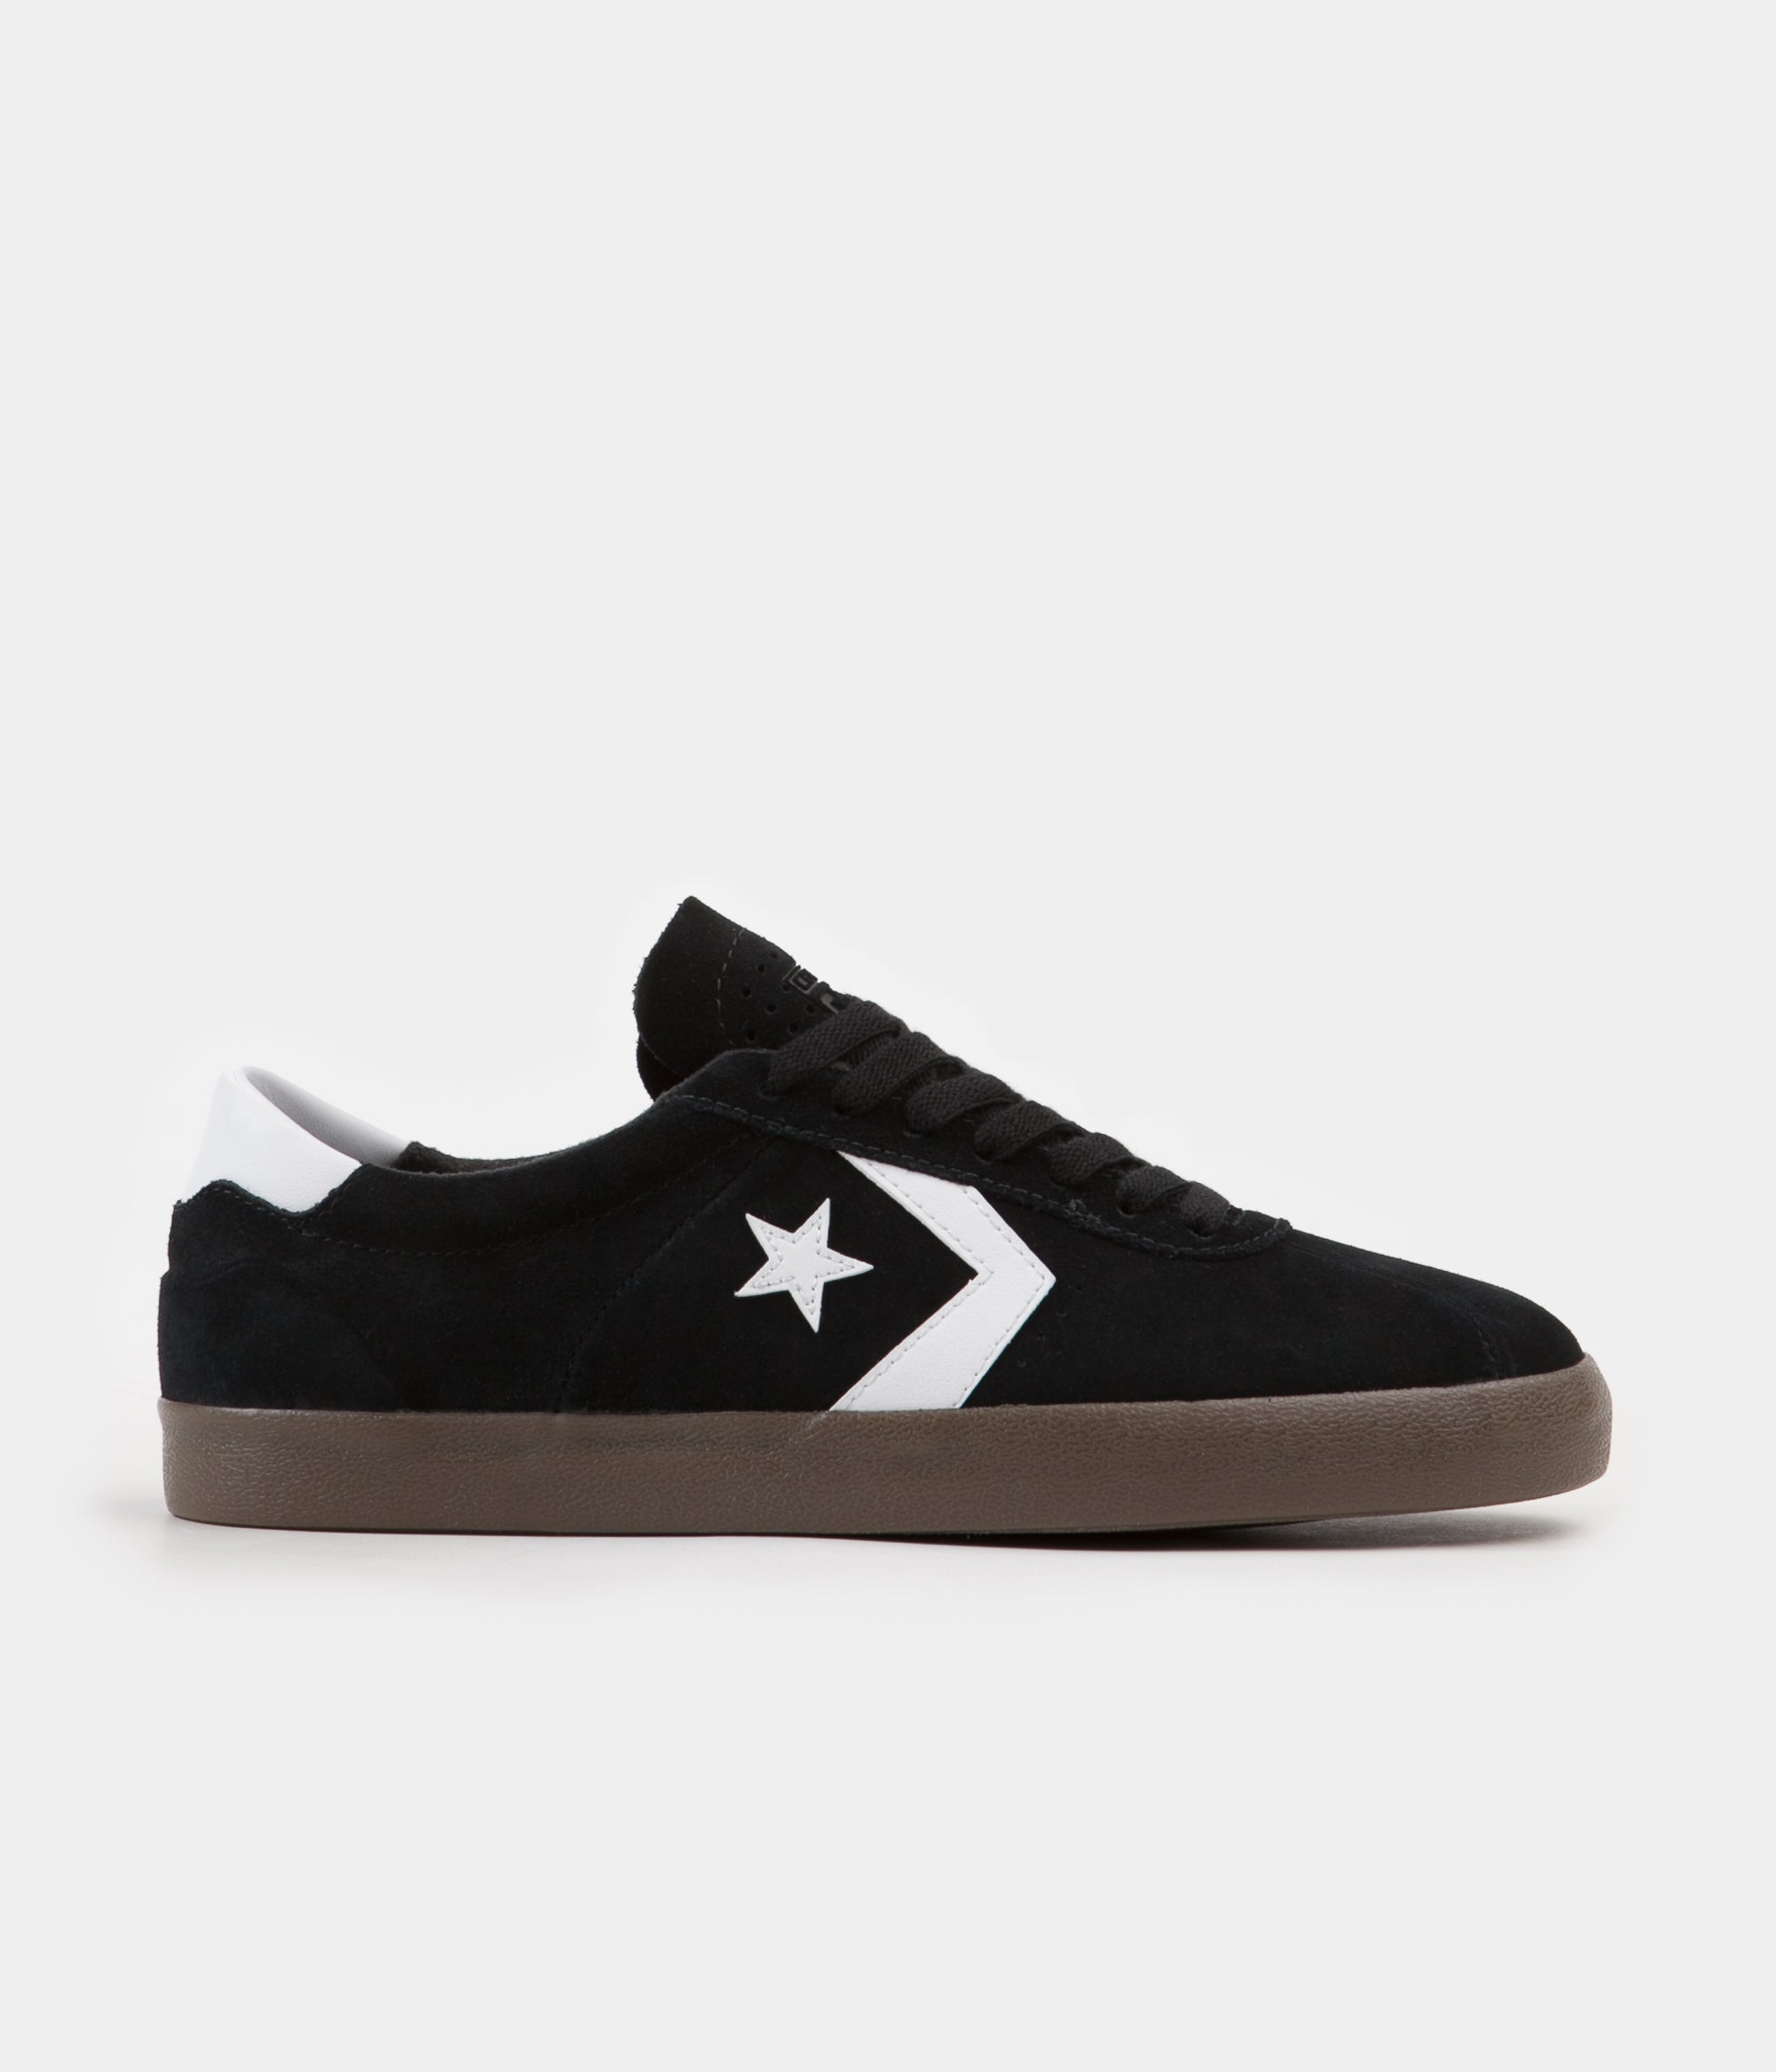 Converse Breakpoint Pro Ox Shoes - Black / White / Gum